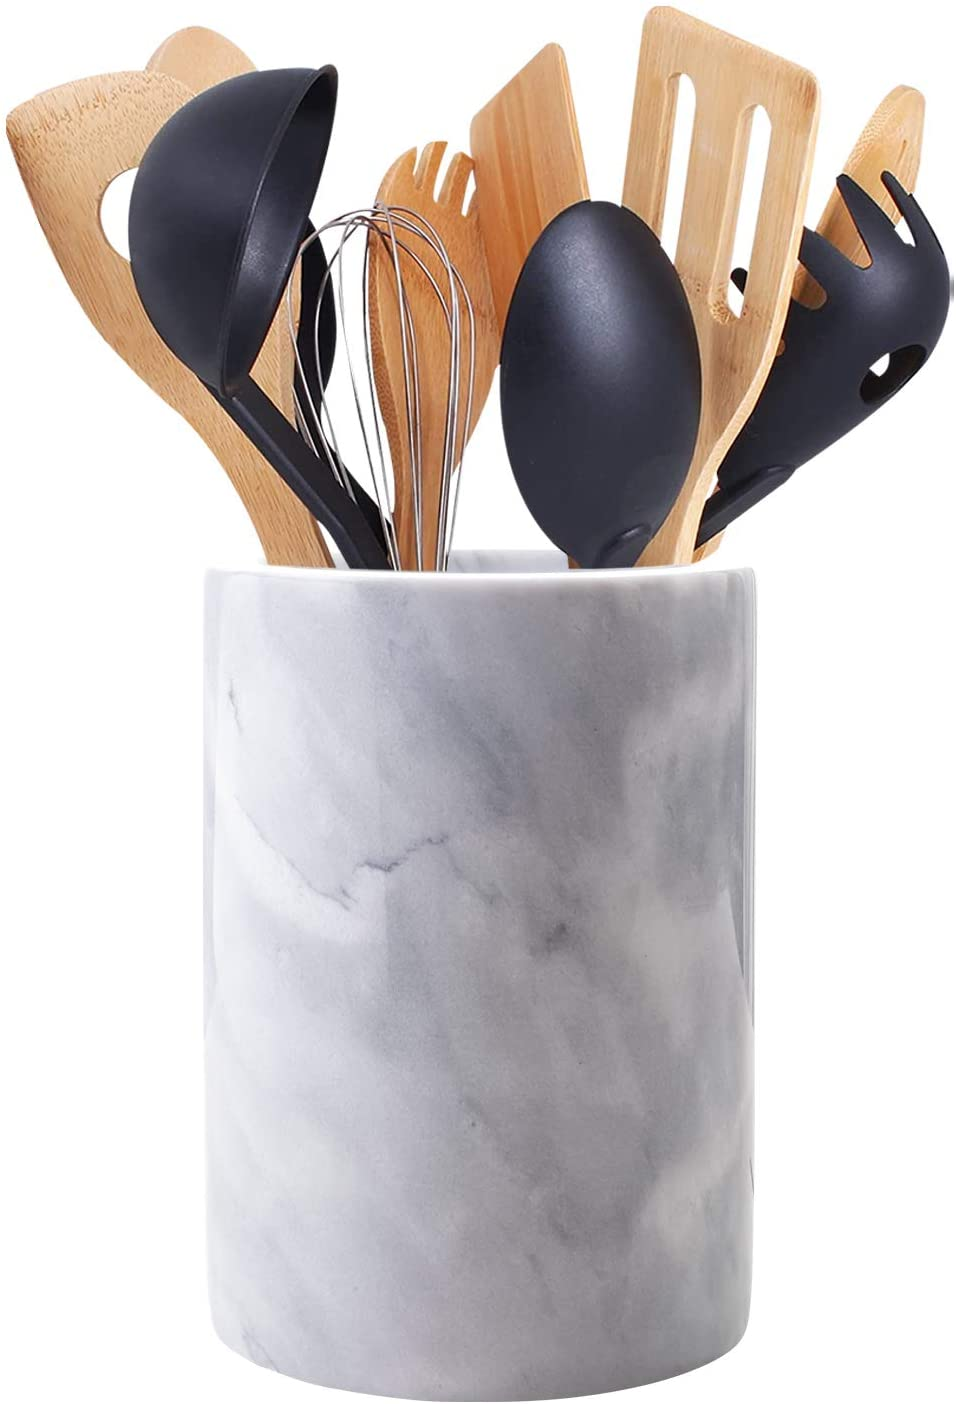 Homeries Marble Kitchen Utensil Holder   Eye-Catching Kitchen Counter Organizers and Storage Helps Keep Your Household Tidy   Caddy Makes Excellent Vintage Farmhouse Home Kitchen Décor